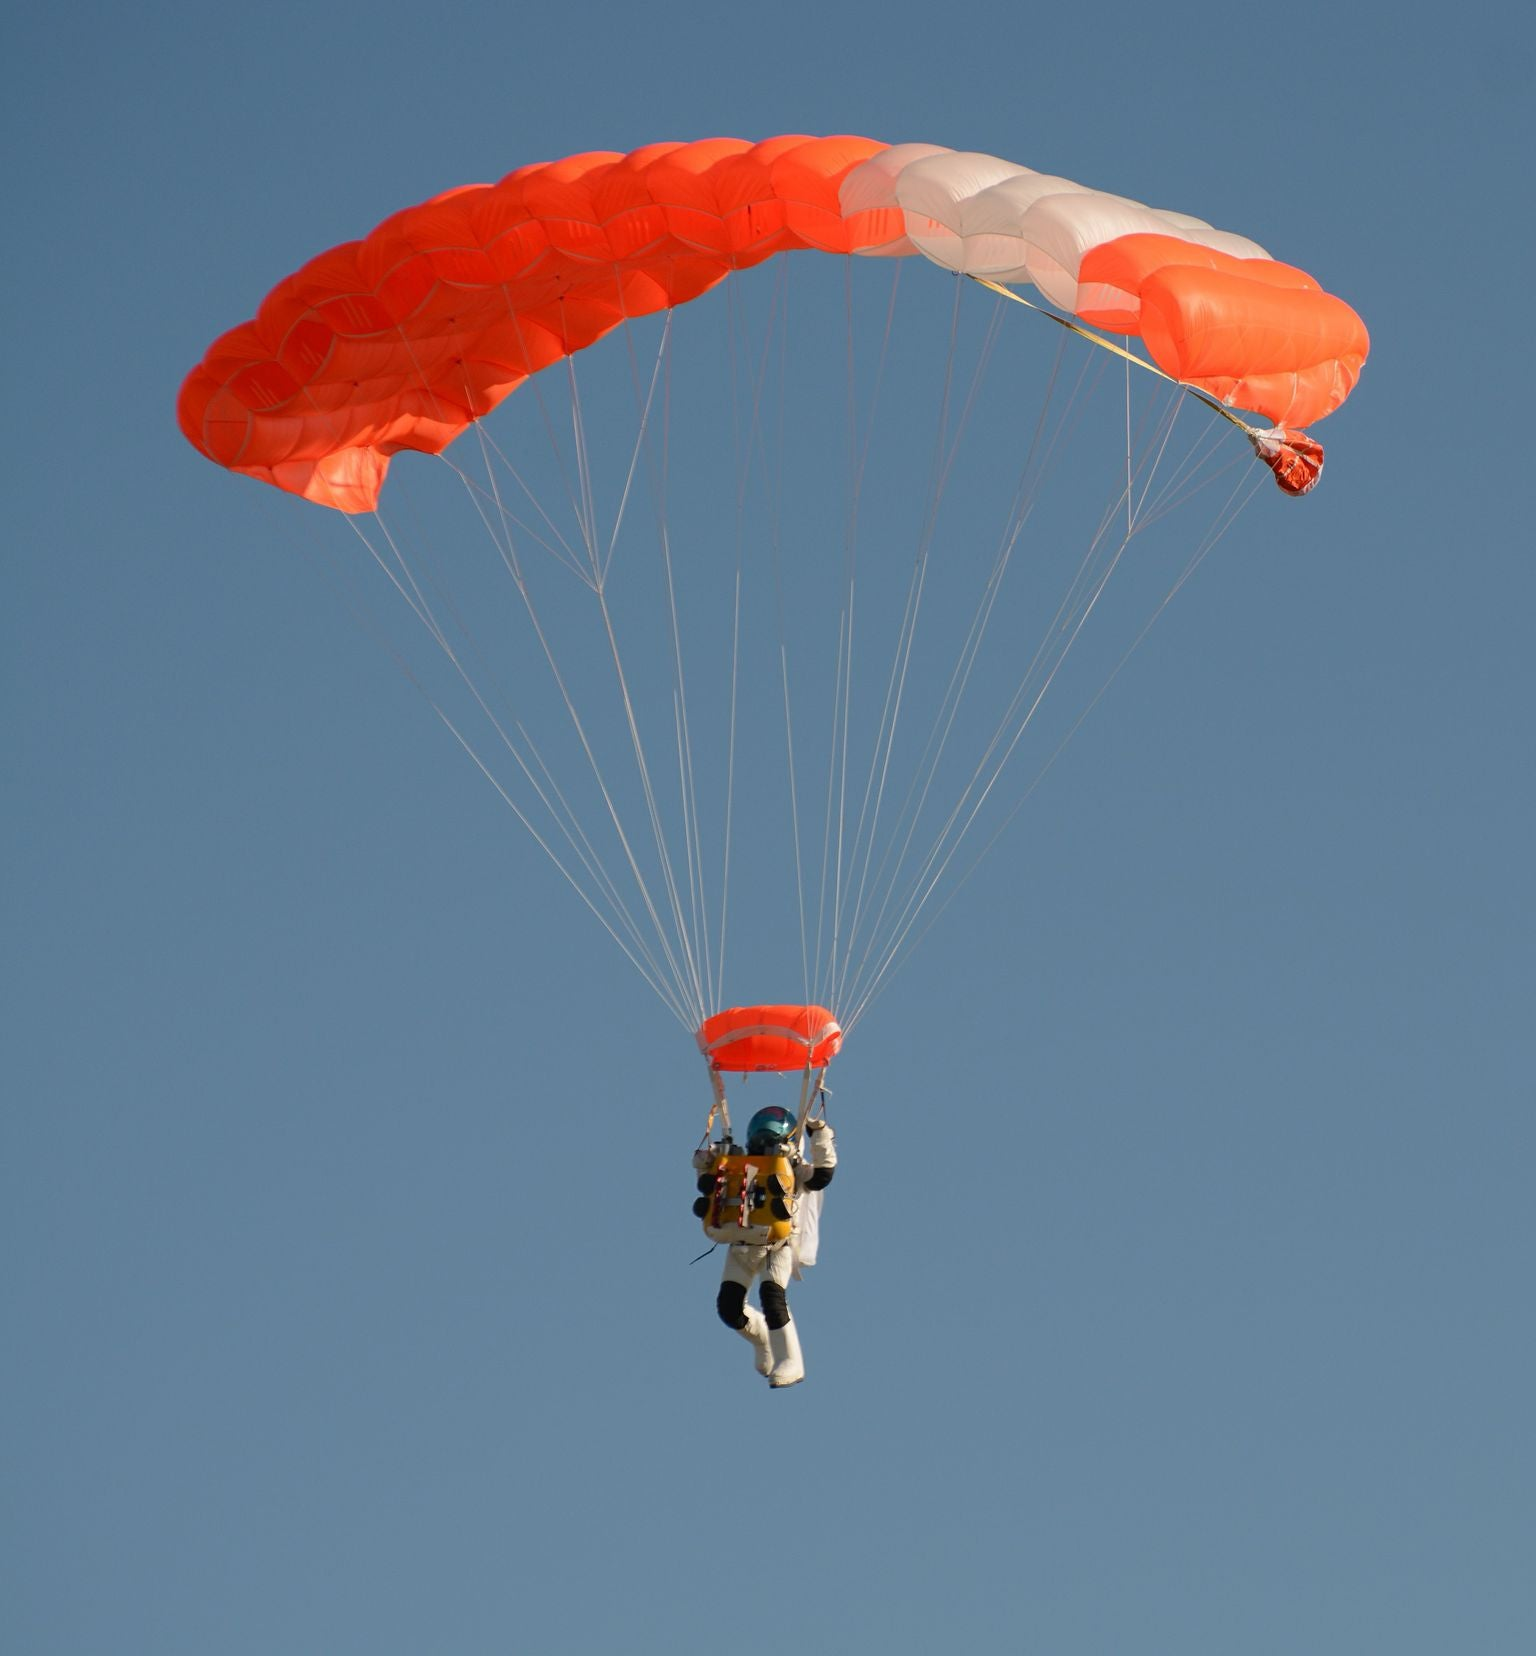 The Week In Numbers: The World's Highest Freefall, A Paralyzed Man Walks, And Driverless Cars Learn To Speed